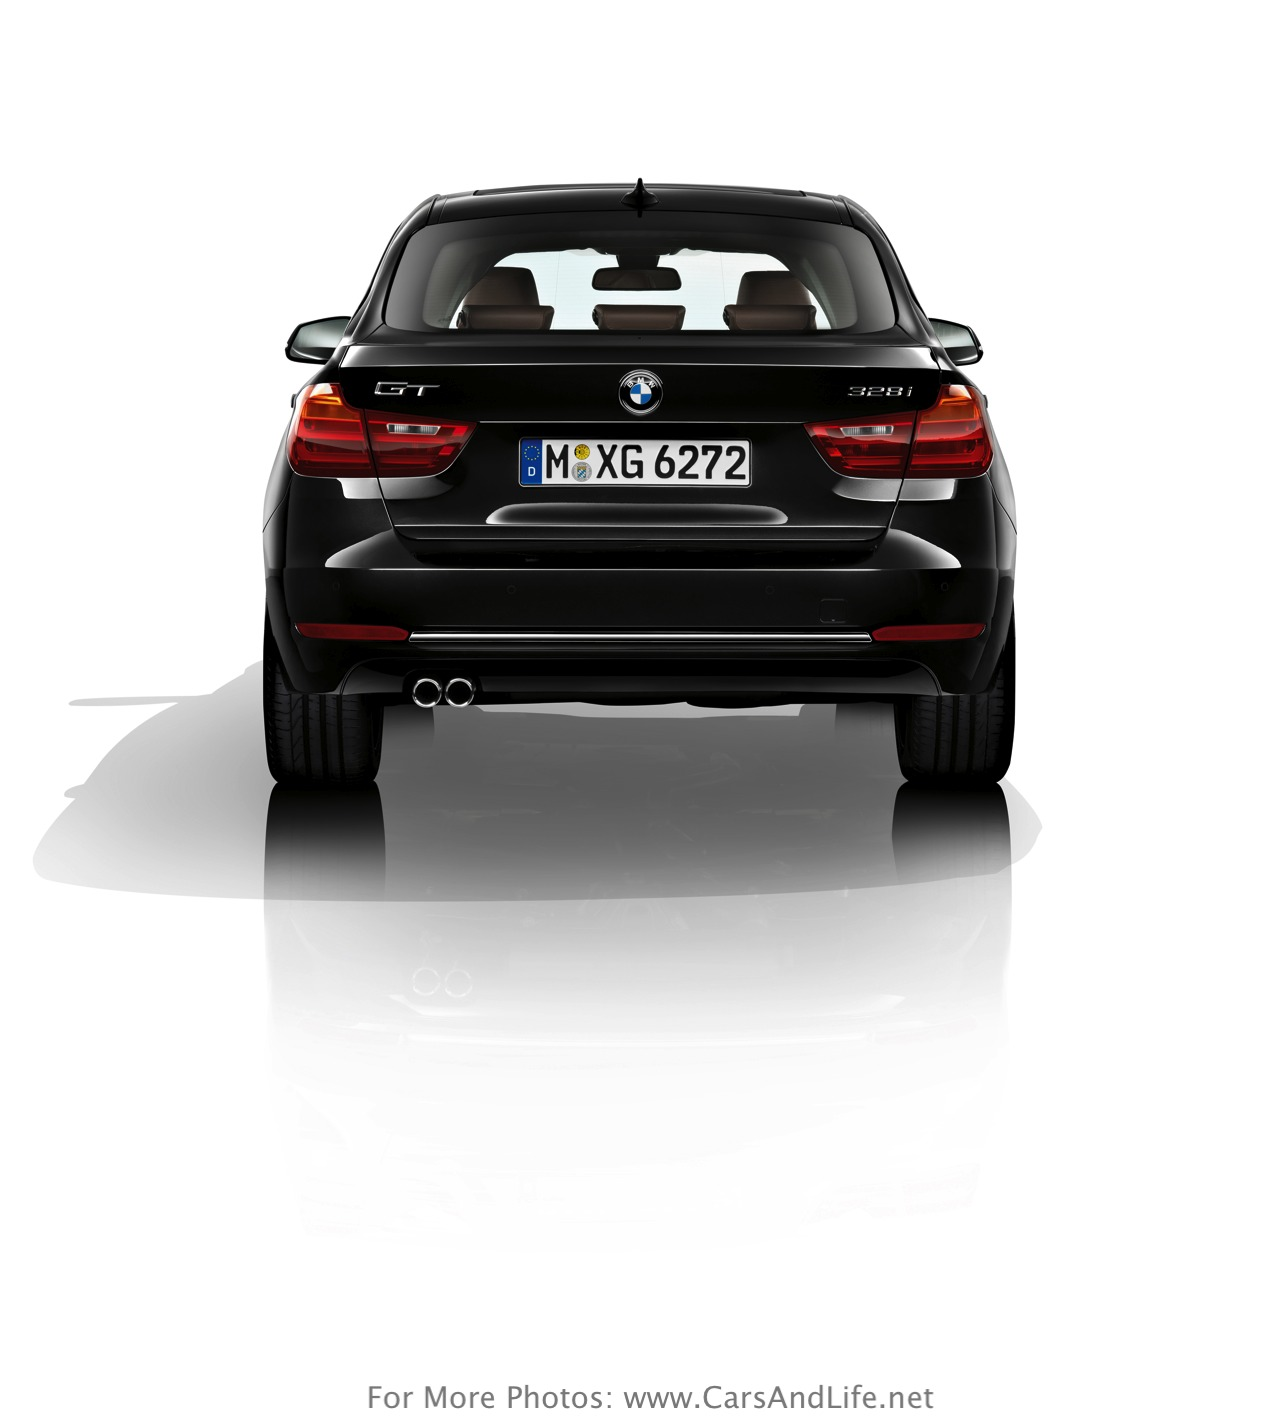 New BMW 3 Series Gran Turismo Or 3 GT: All Photos!